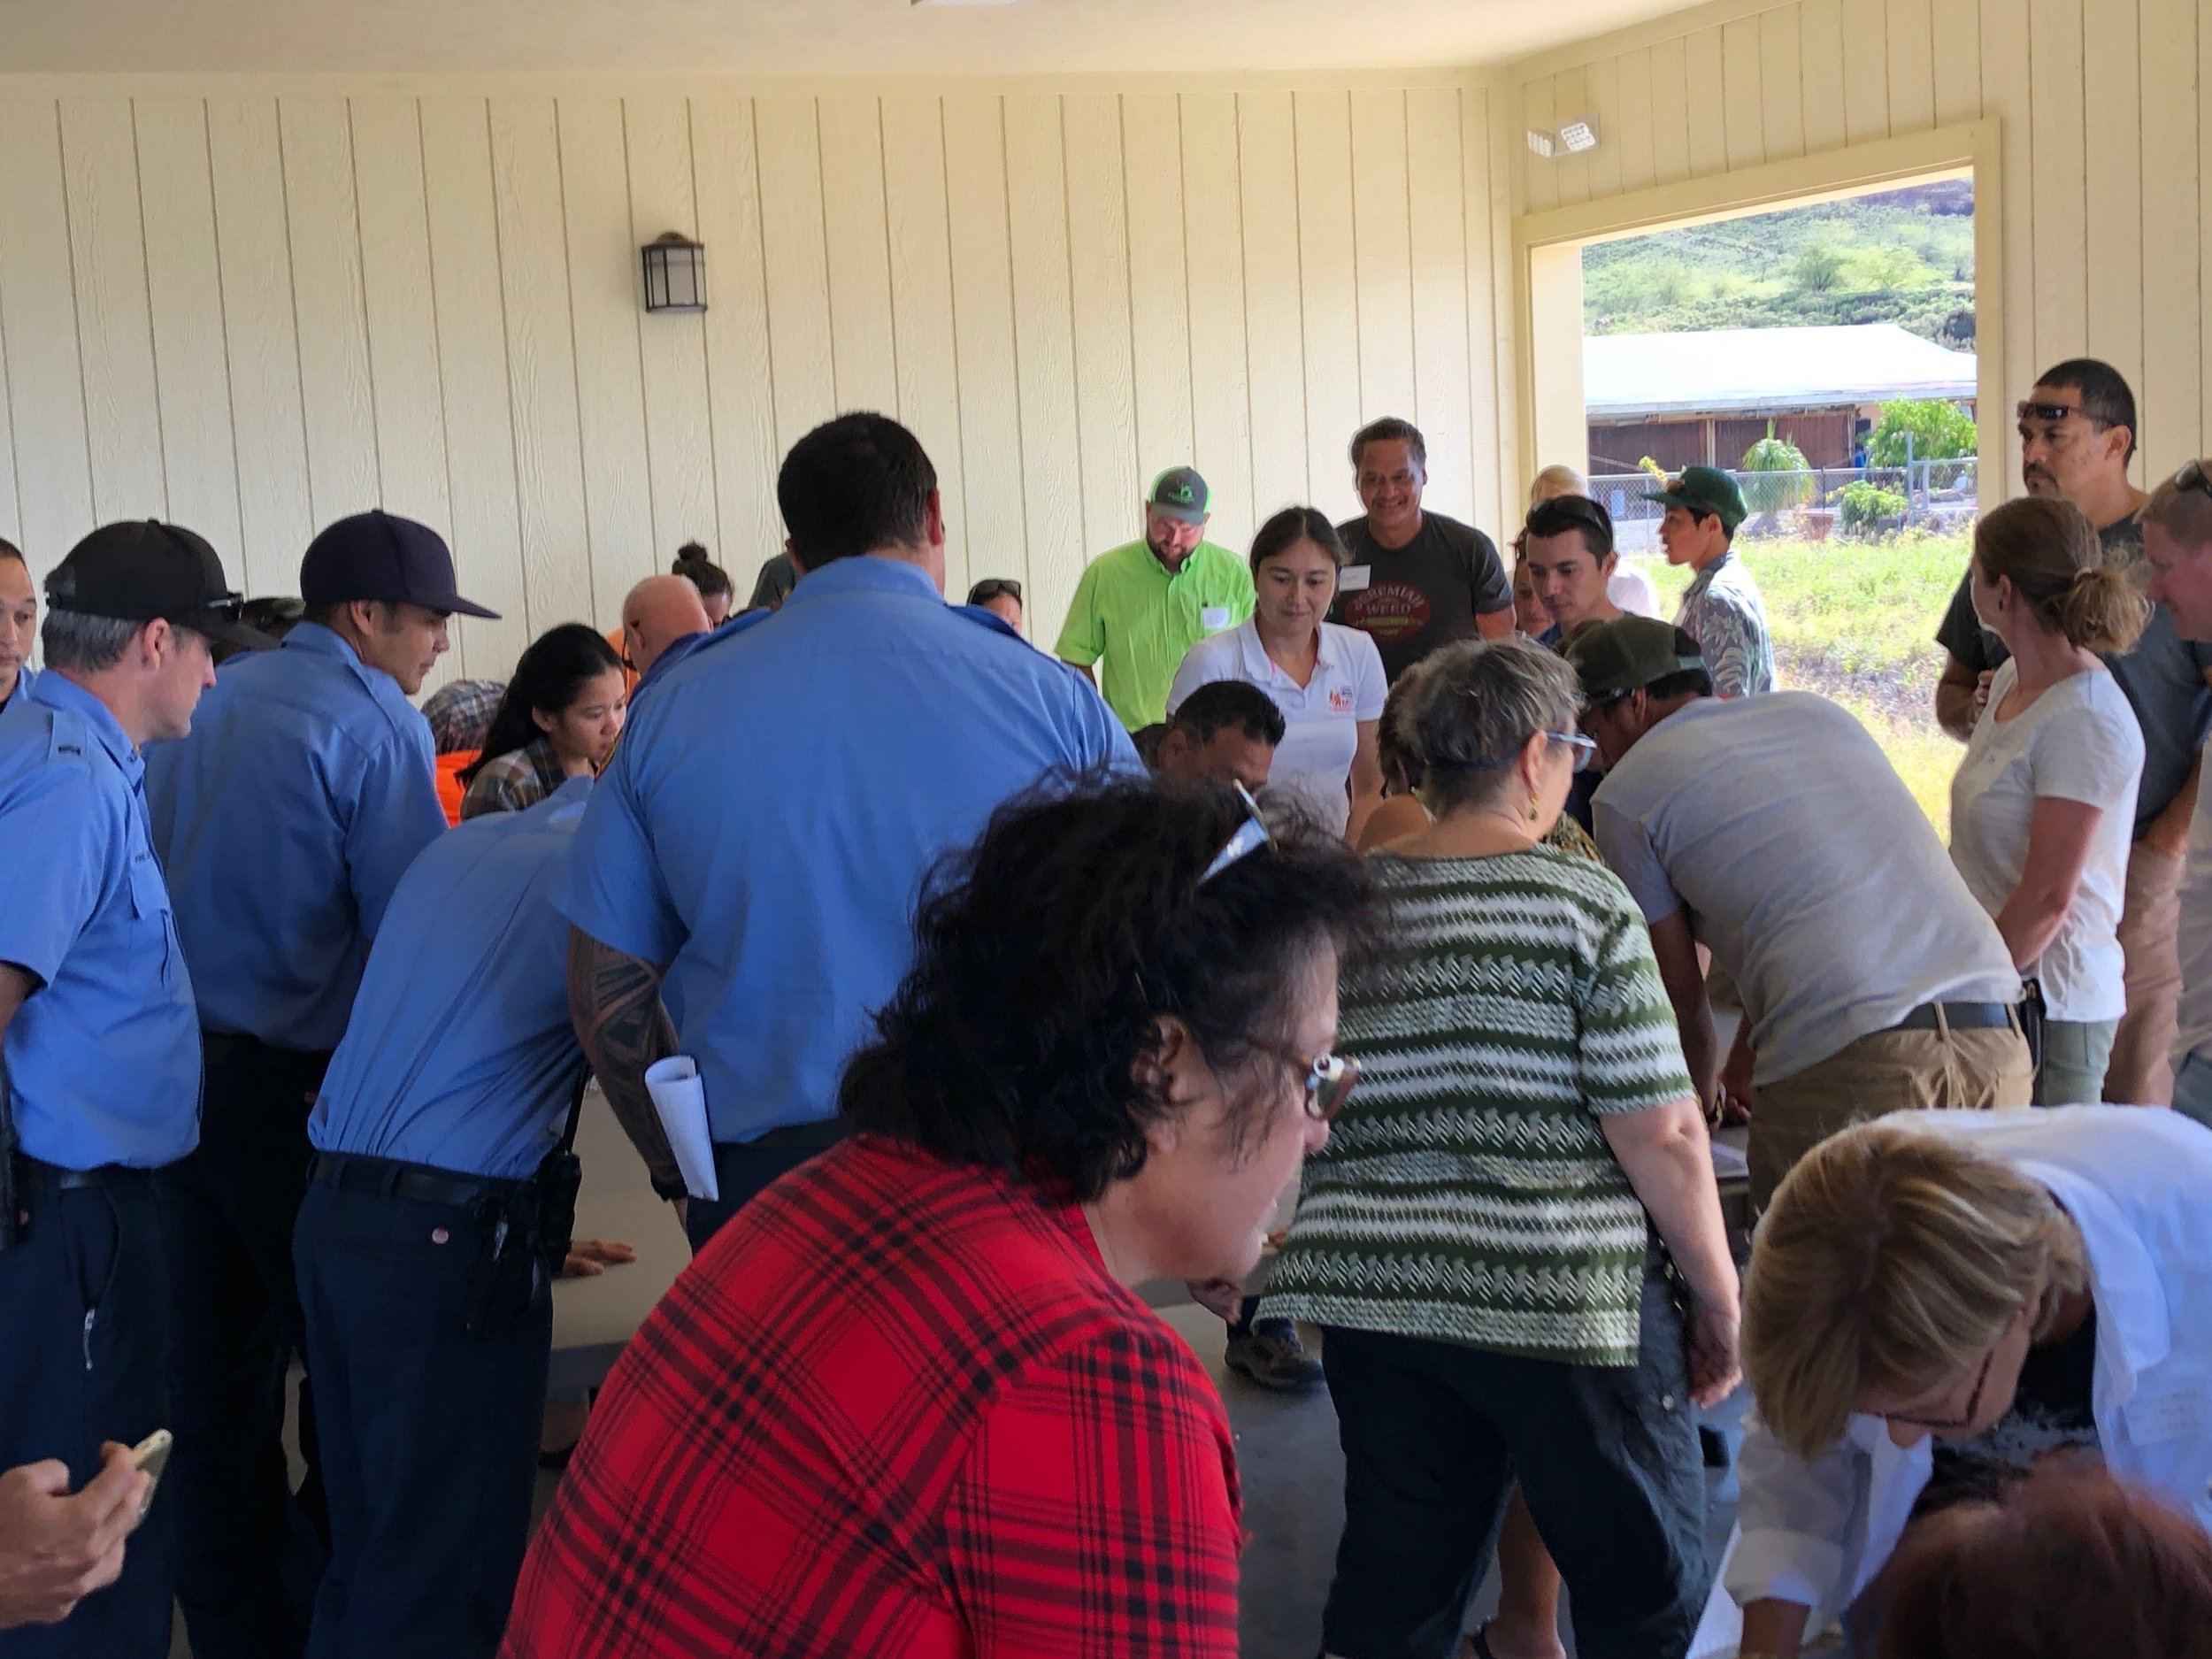 Hawaii Island Kailapa Vegetative Fuels Management Collaborative Action Planning Workshop_2_26_2019_40.jpg